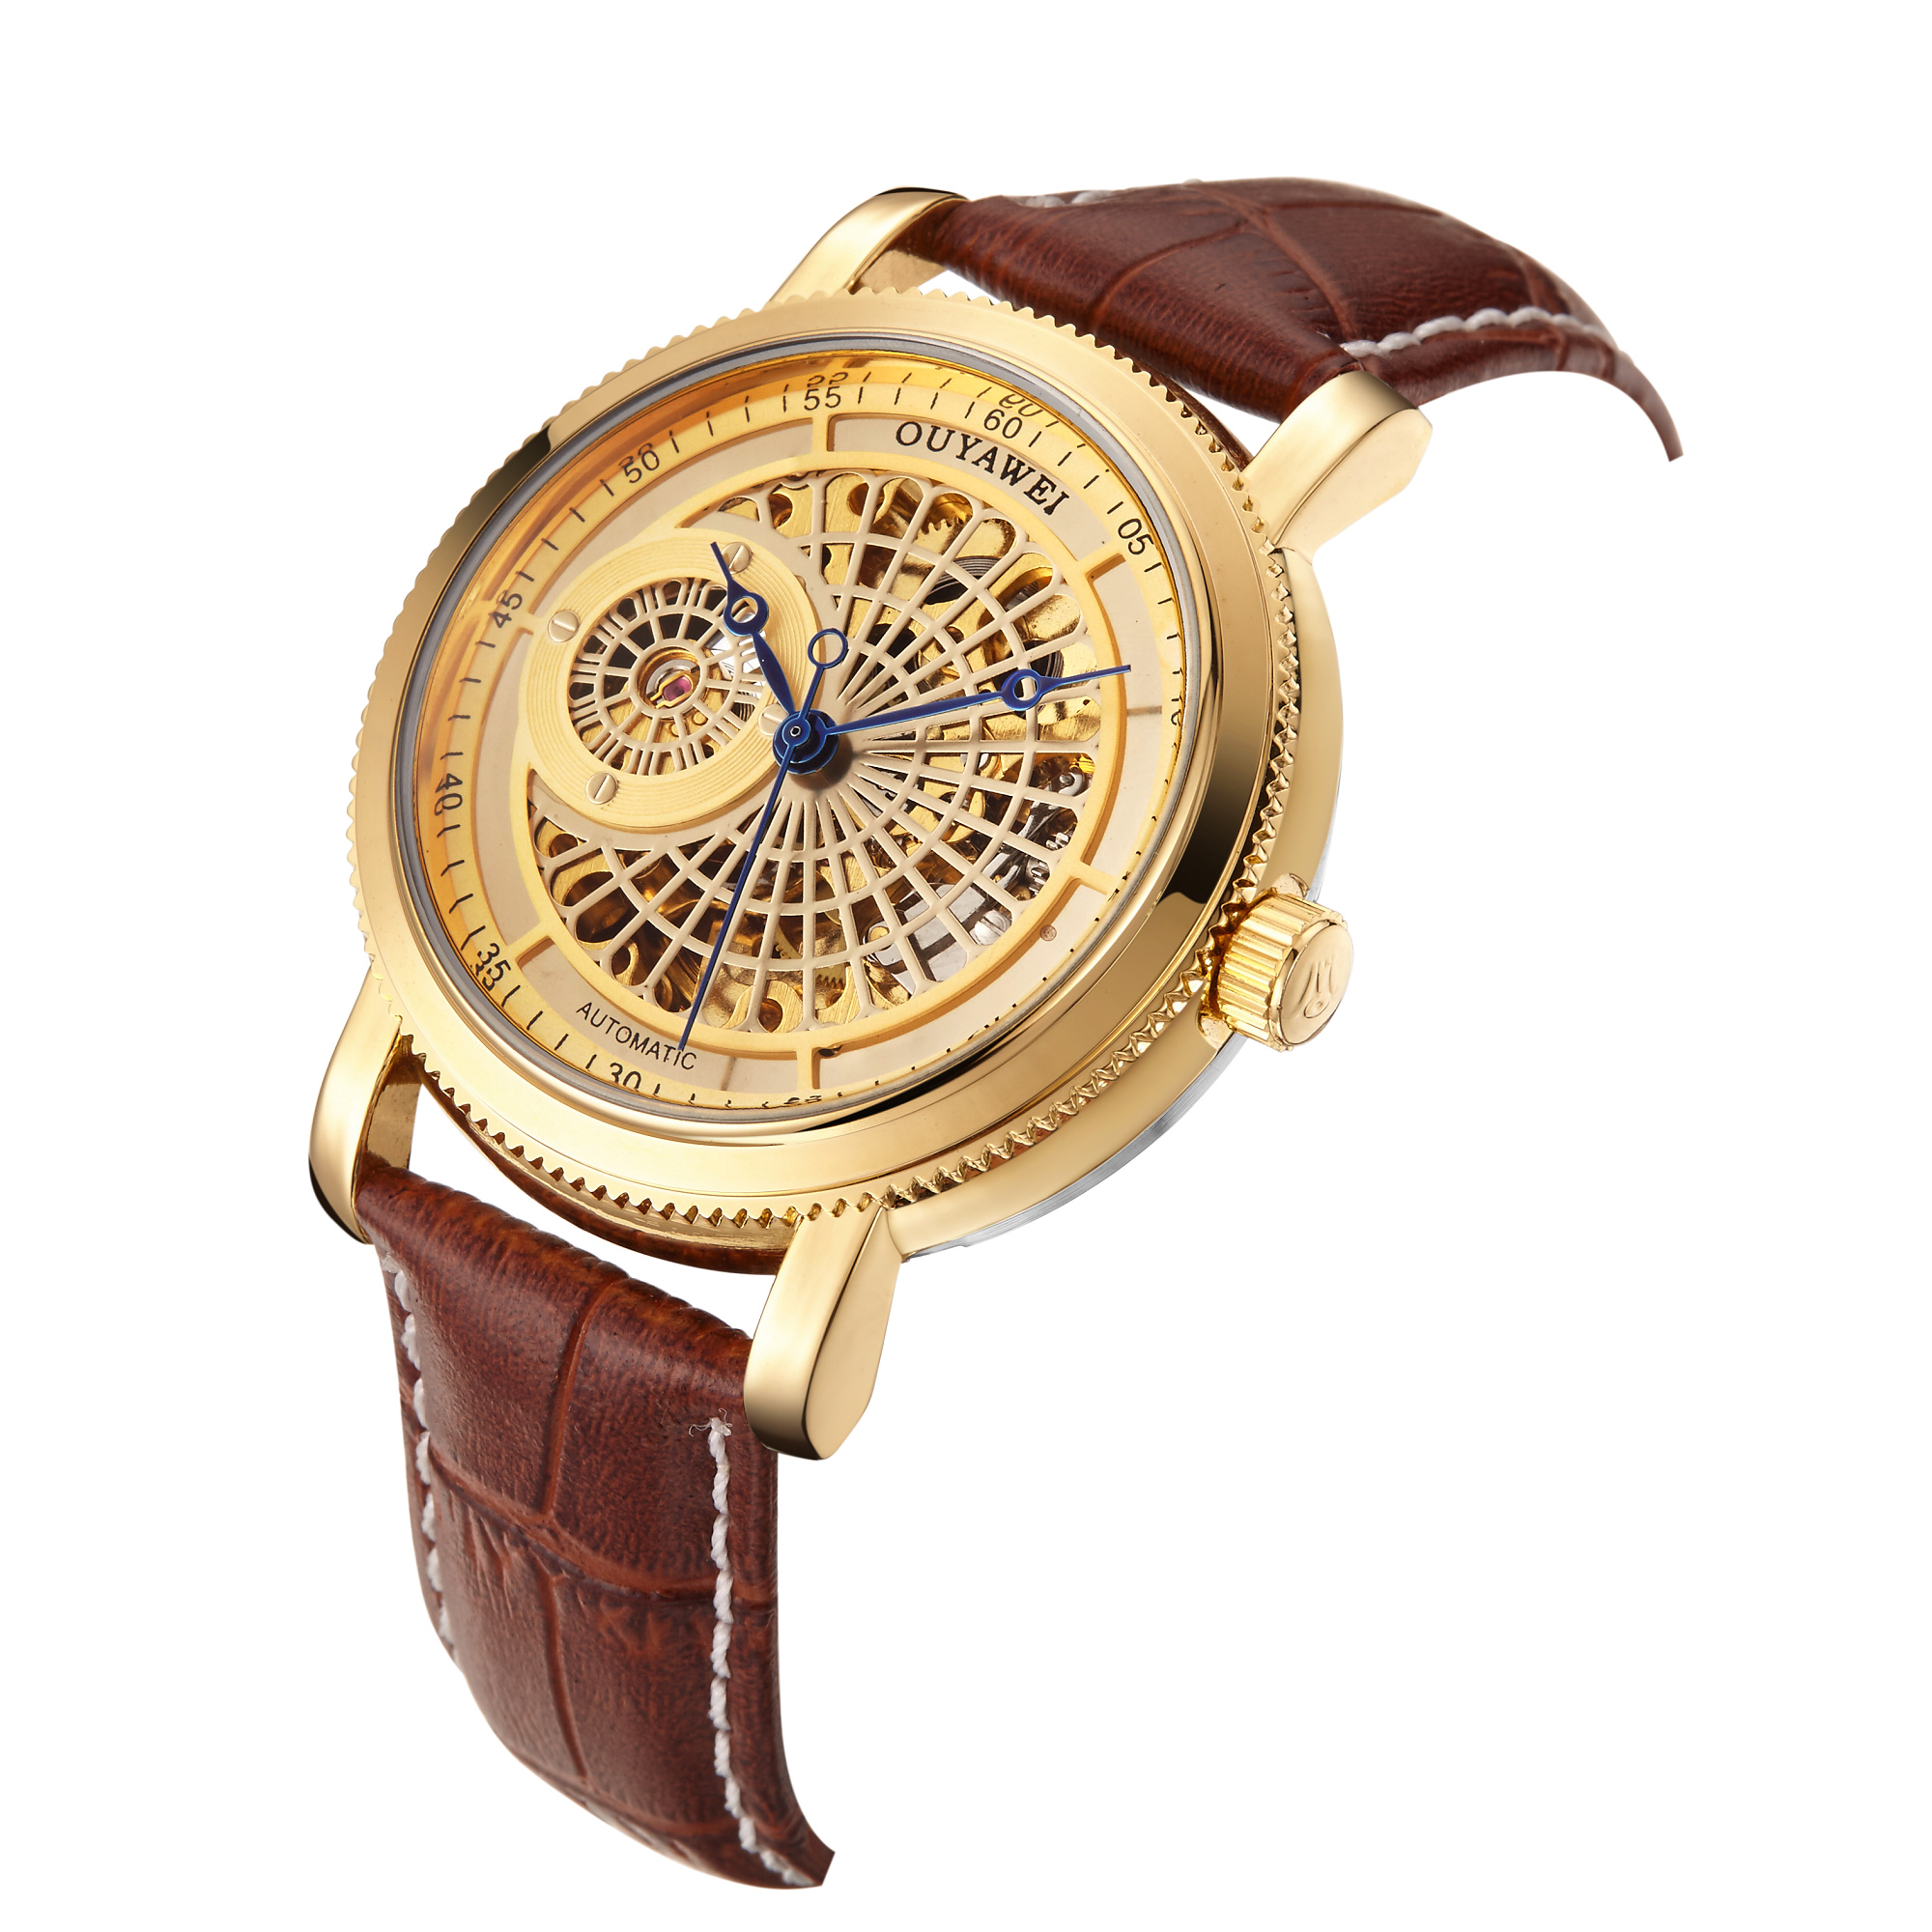 H1bdb717e8b214e7395f6999247362194C Mechanical Gold Watch Luxury Brand Self-winding